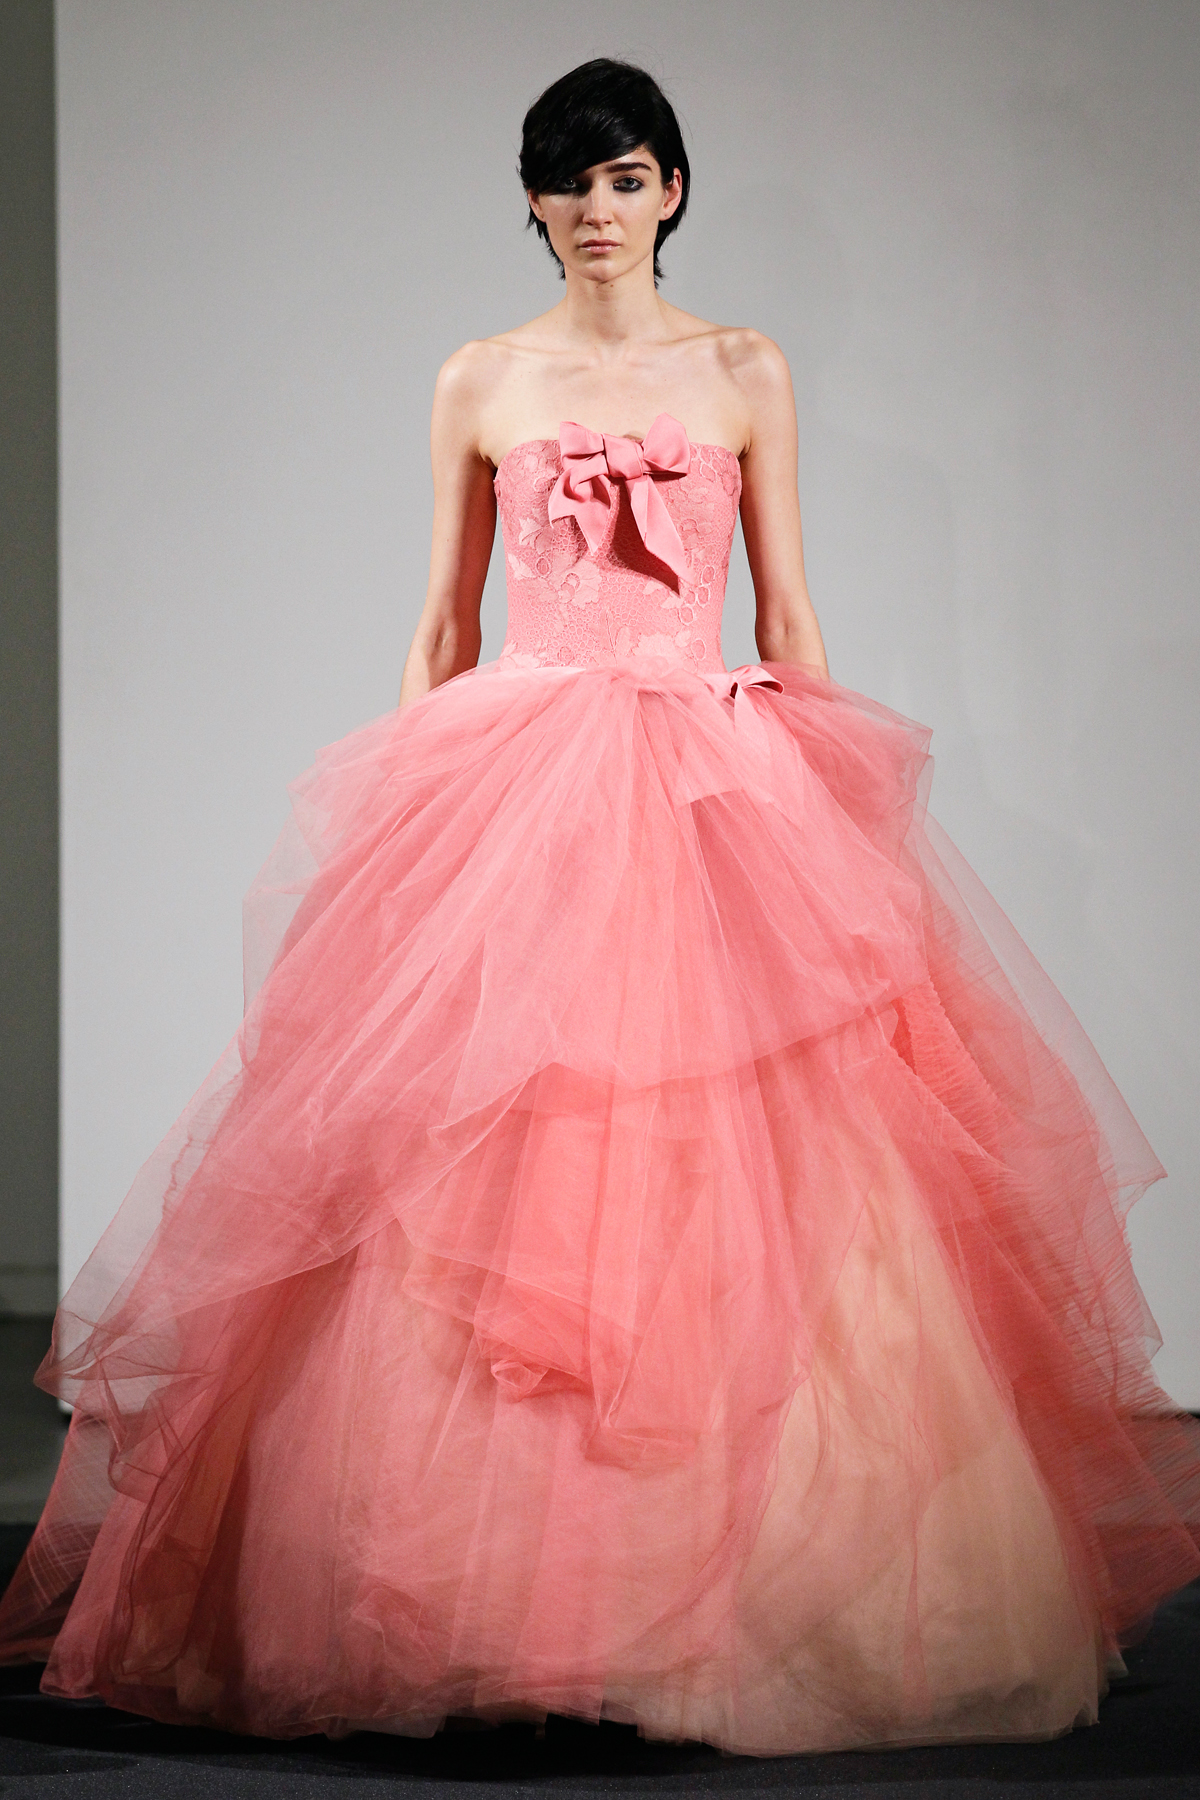 Vera wang 39 s fall 2014 bridal collection features all pink for Best vera wang wedding dresses